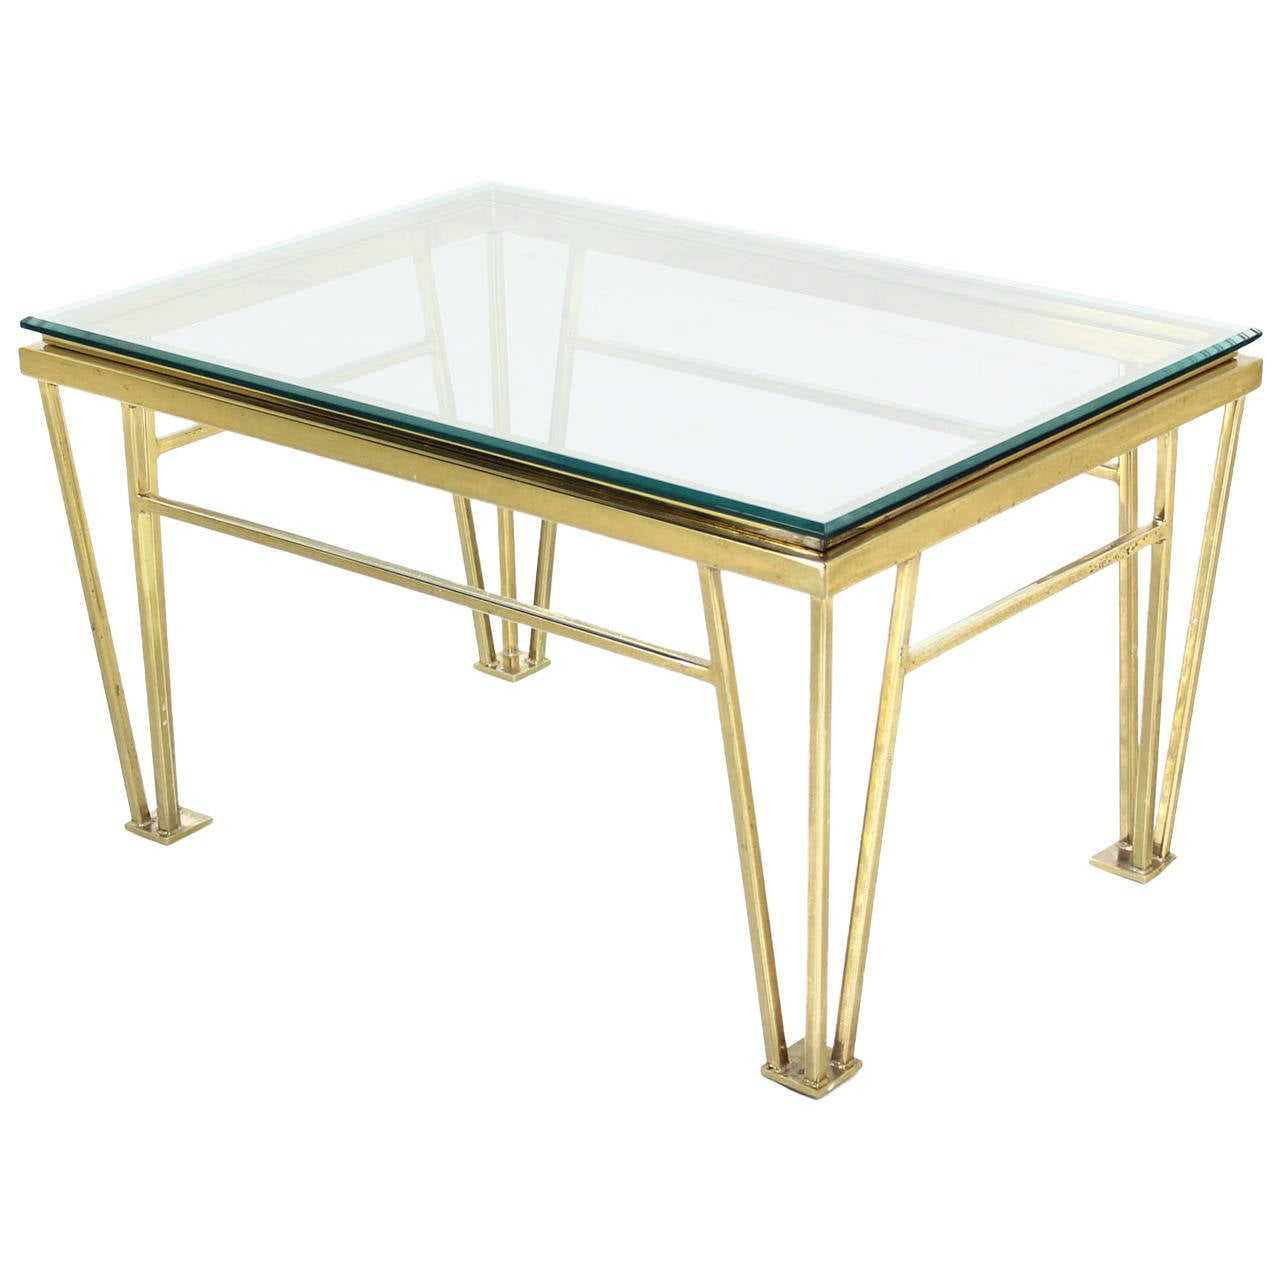 Geometric Frame Rectangular Brass Side Table w/ Glass Top